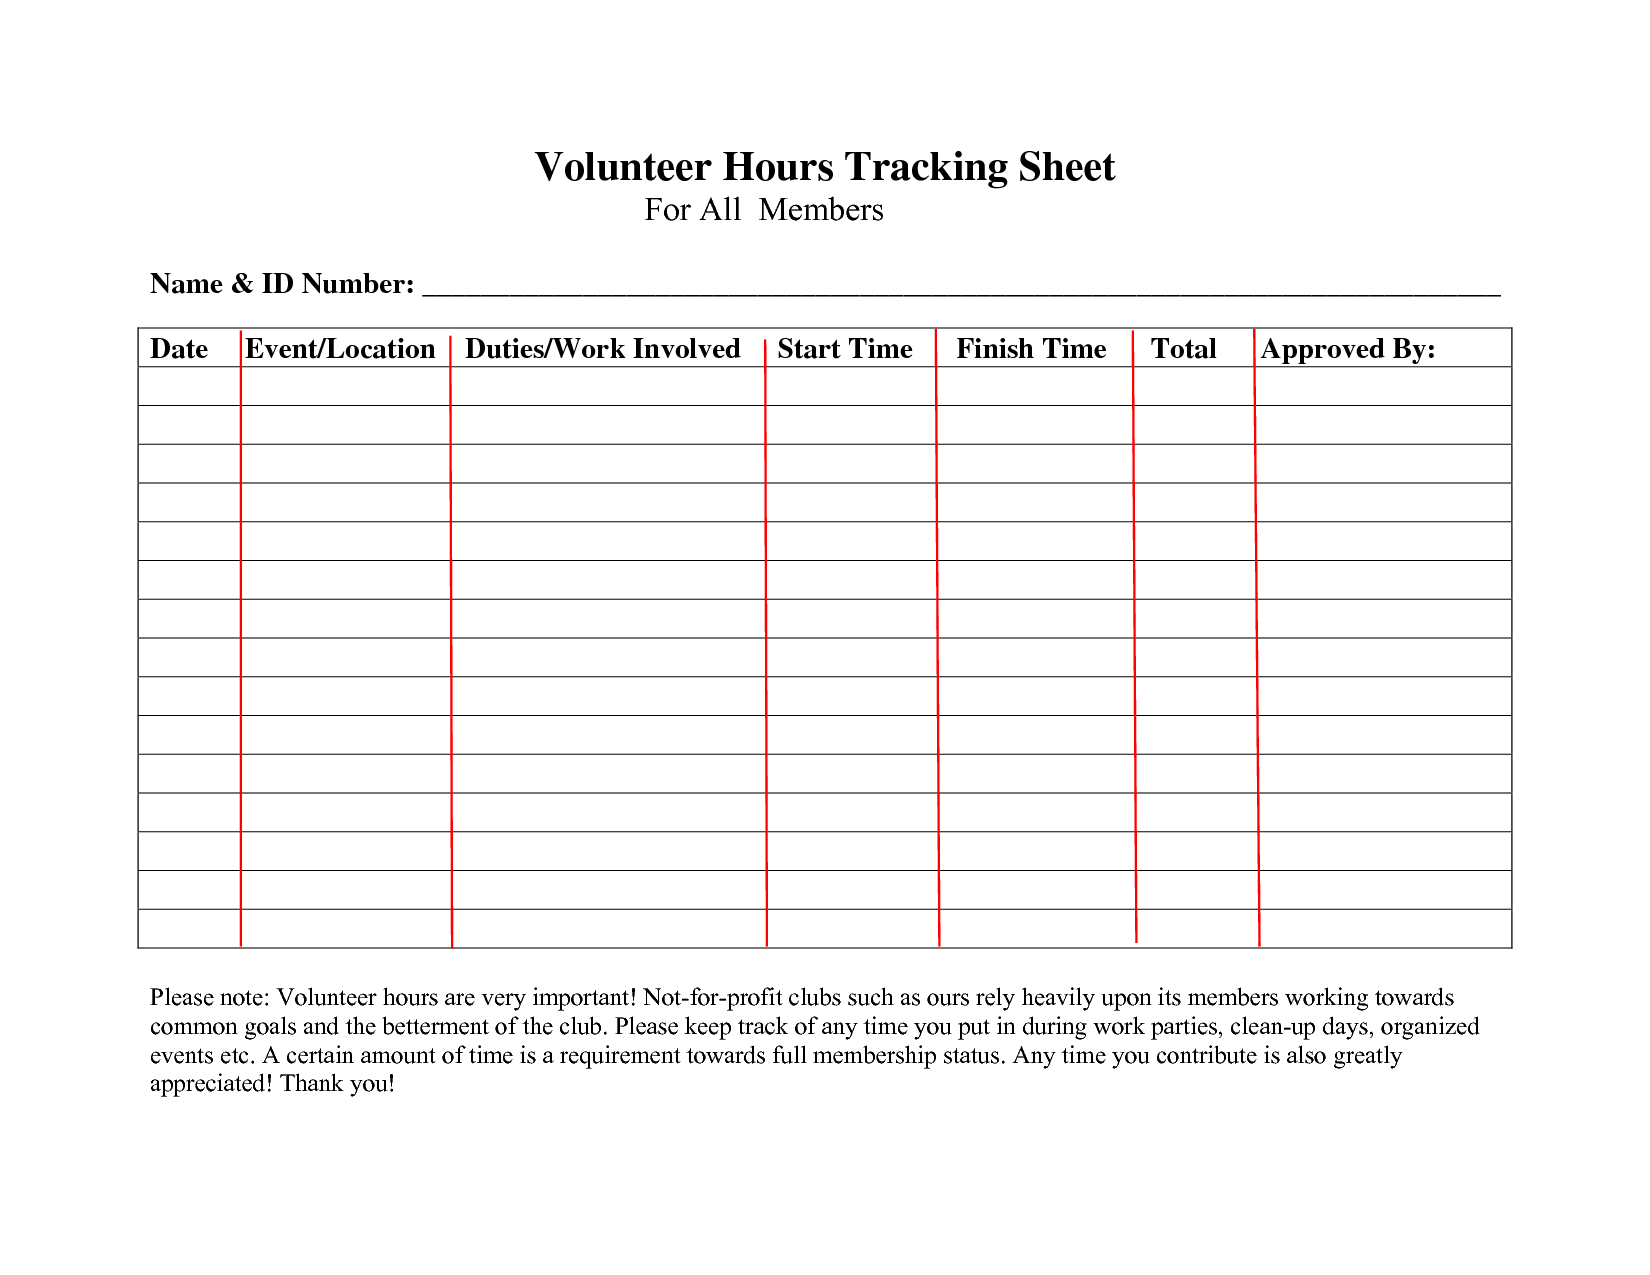 volunteerhourslogsheettemplate